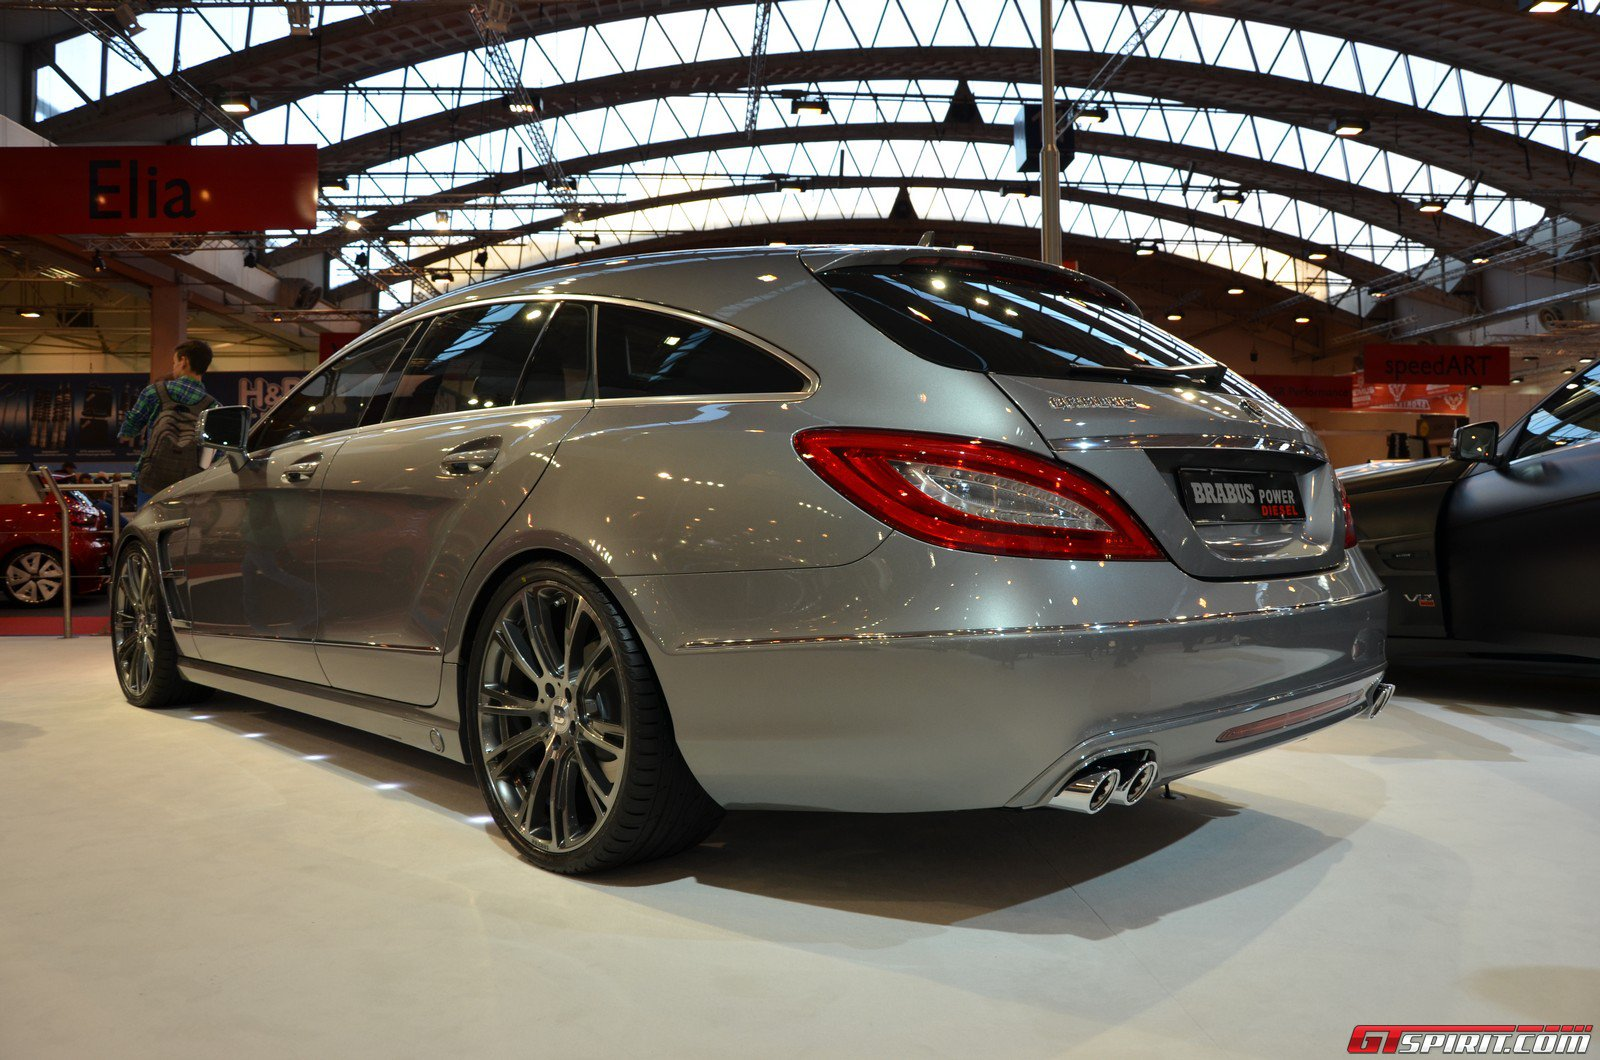 2012 brabus mercedes cls shooting brake dark cars wallpapers. Black Bedroom Furniture Sets. Home Design Ideas